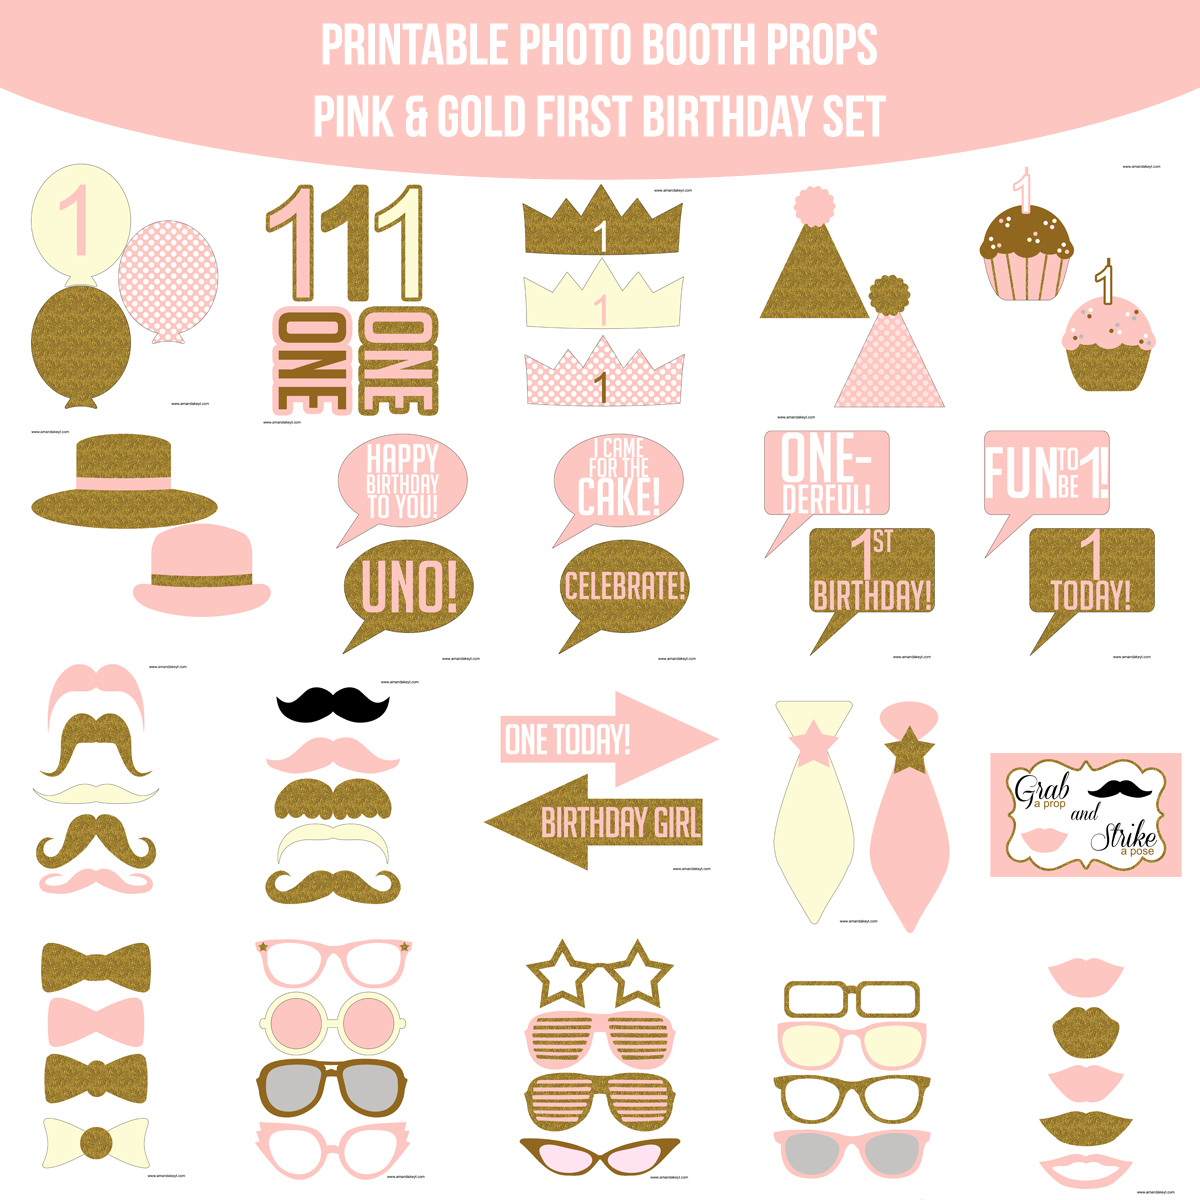 image regarding Printable Photo Booth Props Birthday named Fast Obtain Very first Birthday Purple Gold Glitter Printable Image Booth Prop Fixed Amanda Keyt Printable Options